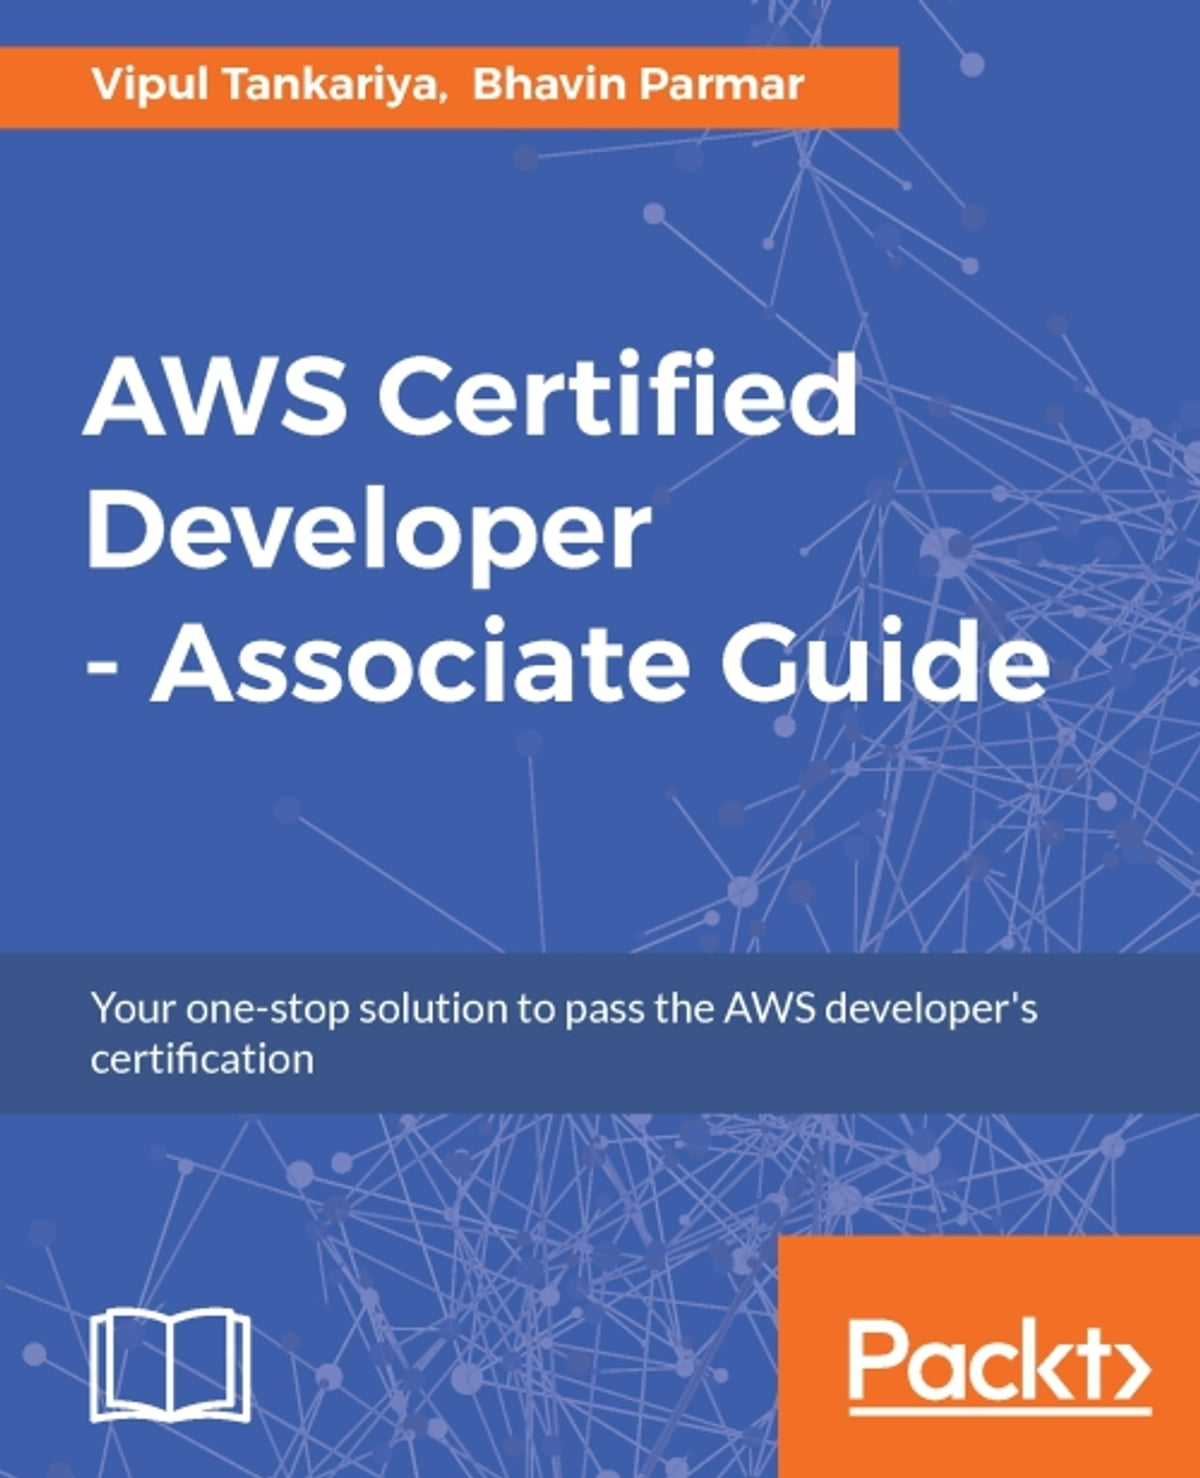 Aws Certified Developer Associate Guide Ebook By Vipul Tankariya